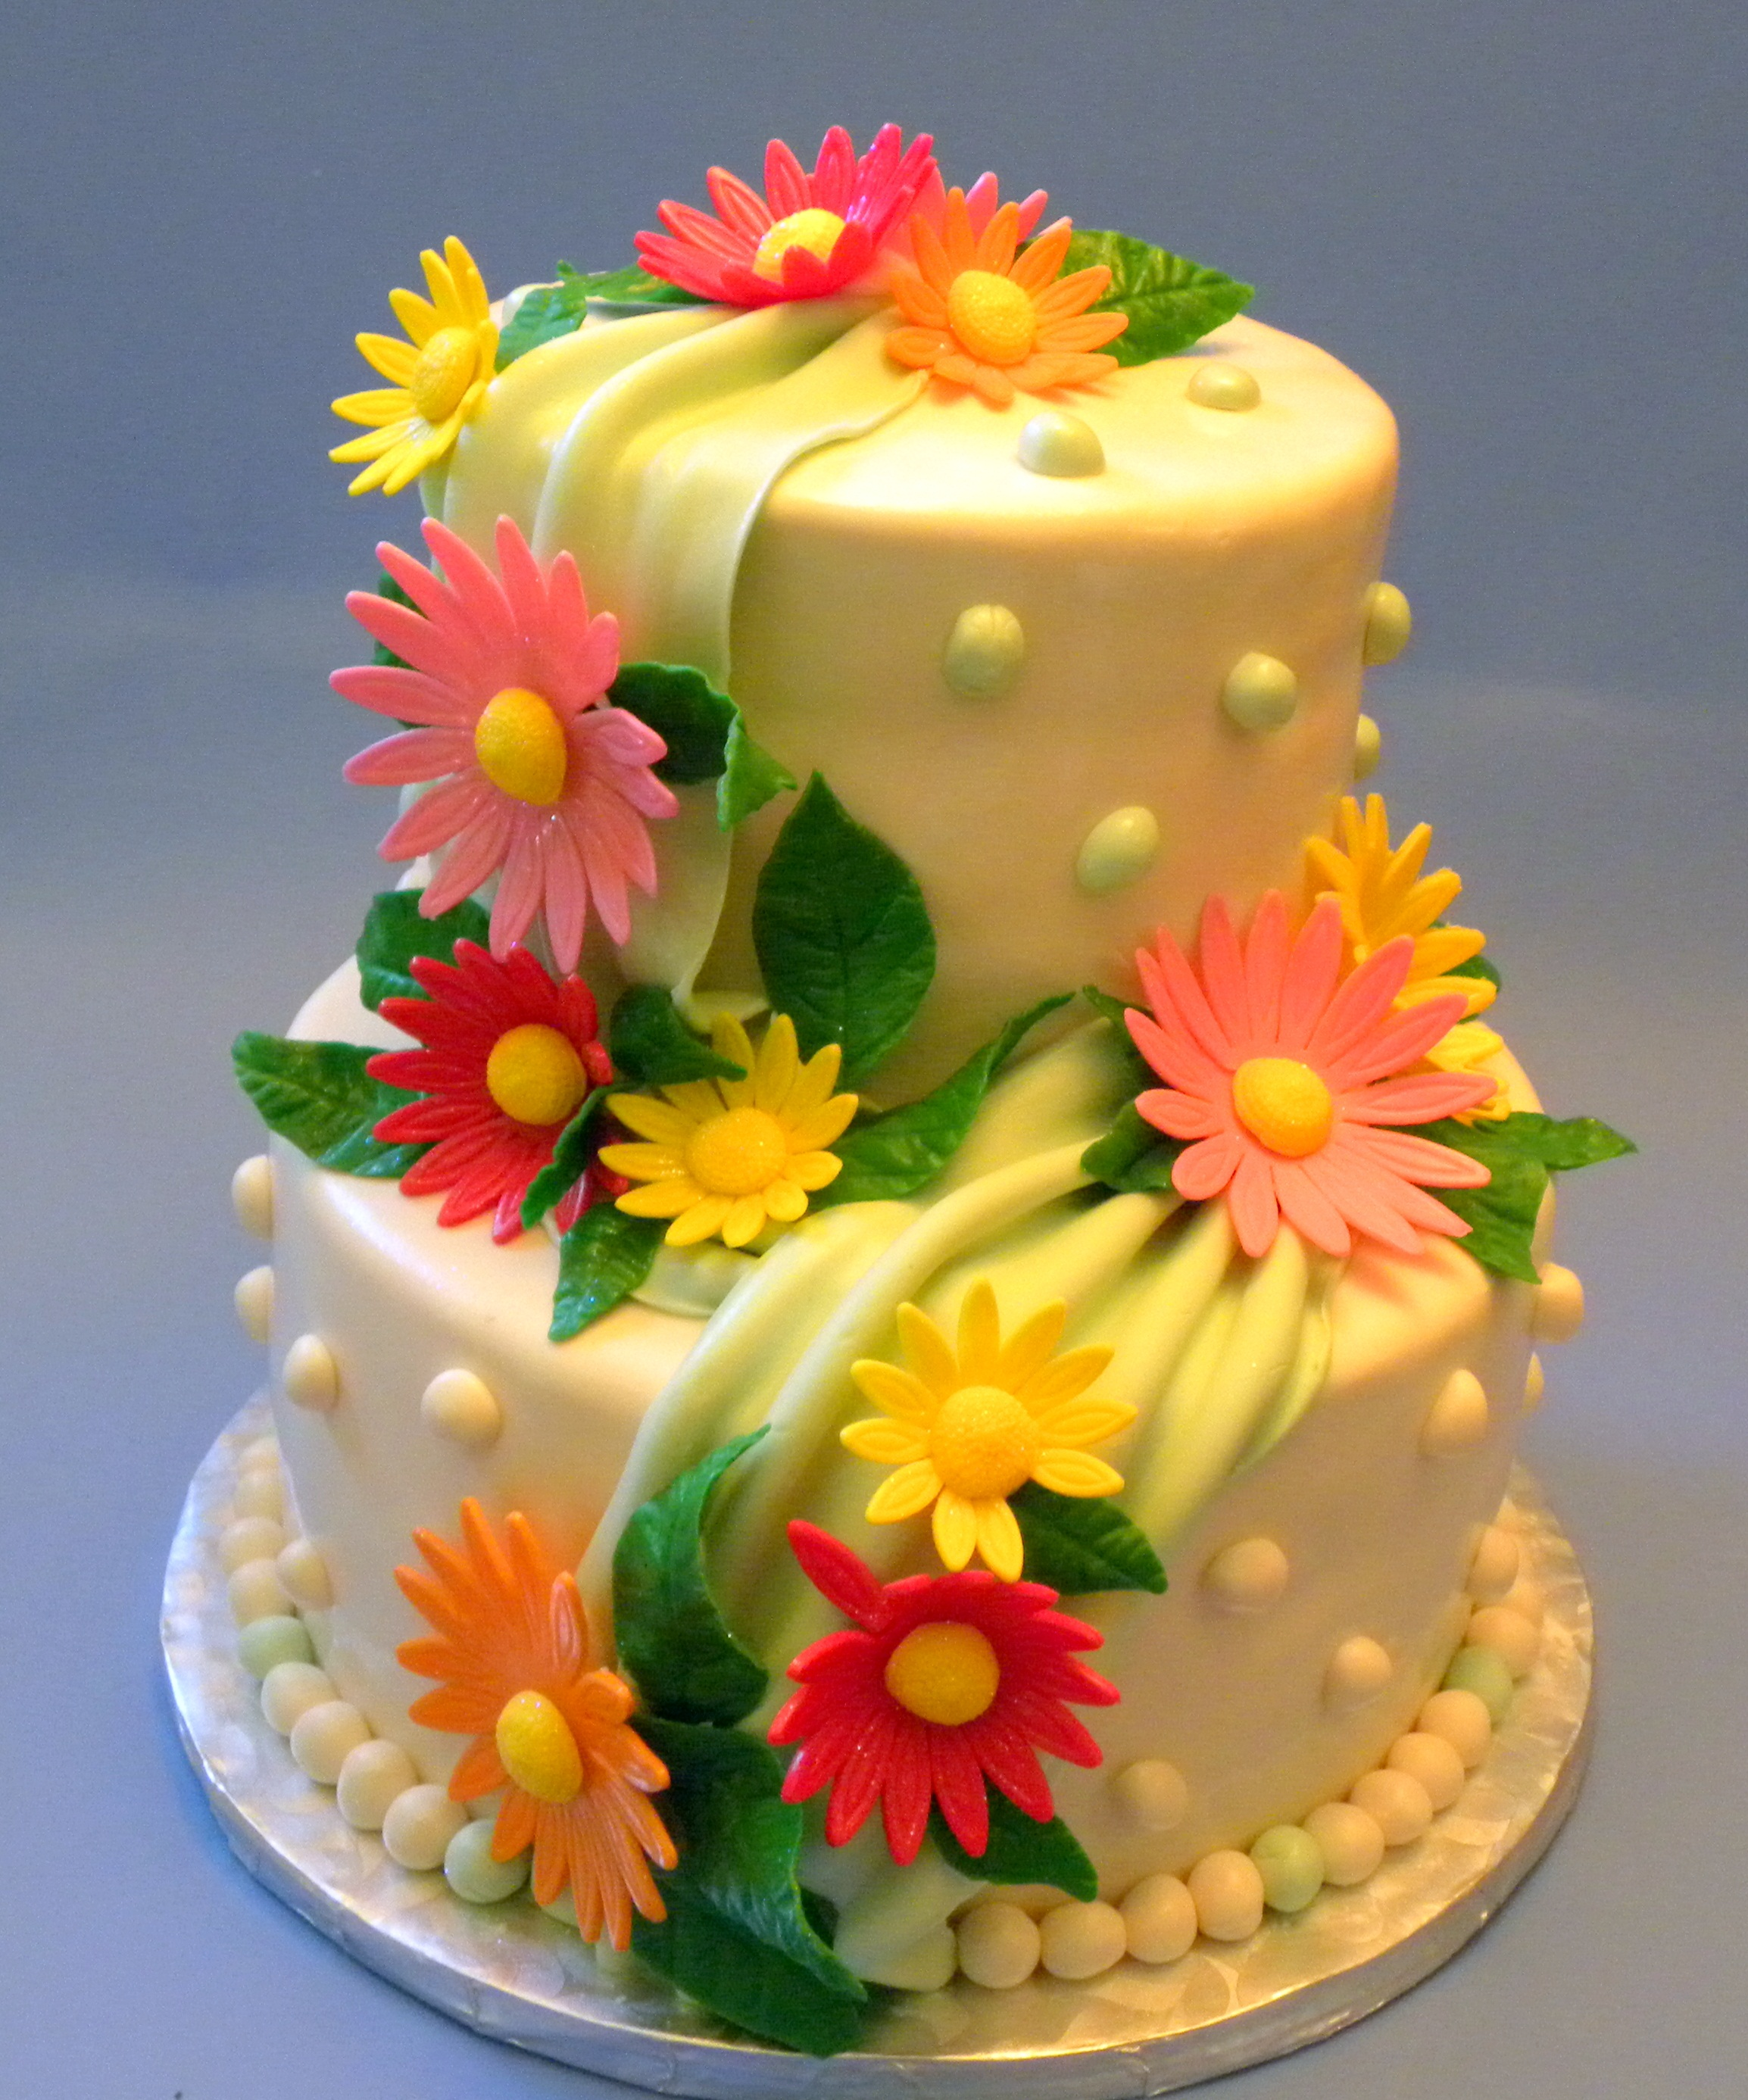 Flower cakes decoration ideas little birthday cakes birthday cake flowers izmirmasajfo